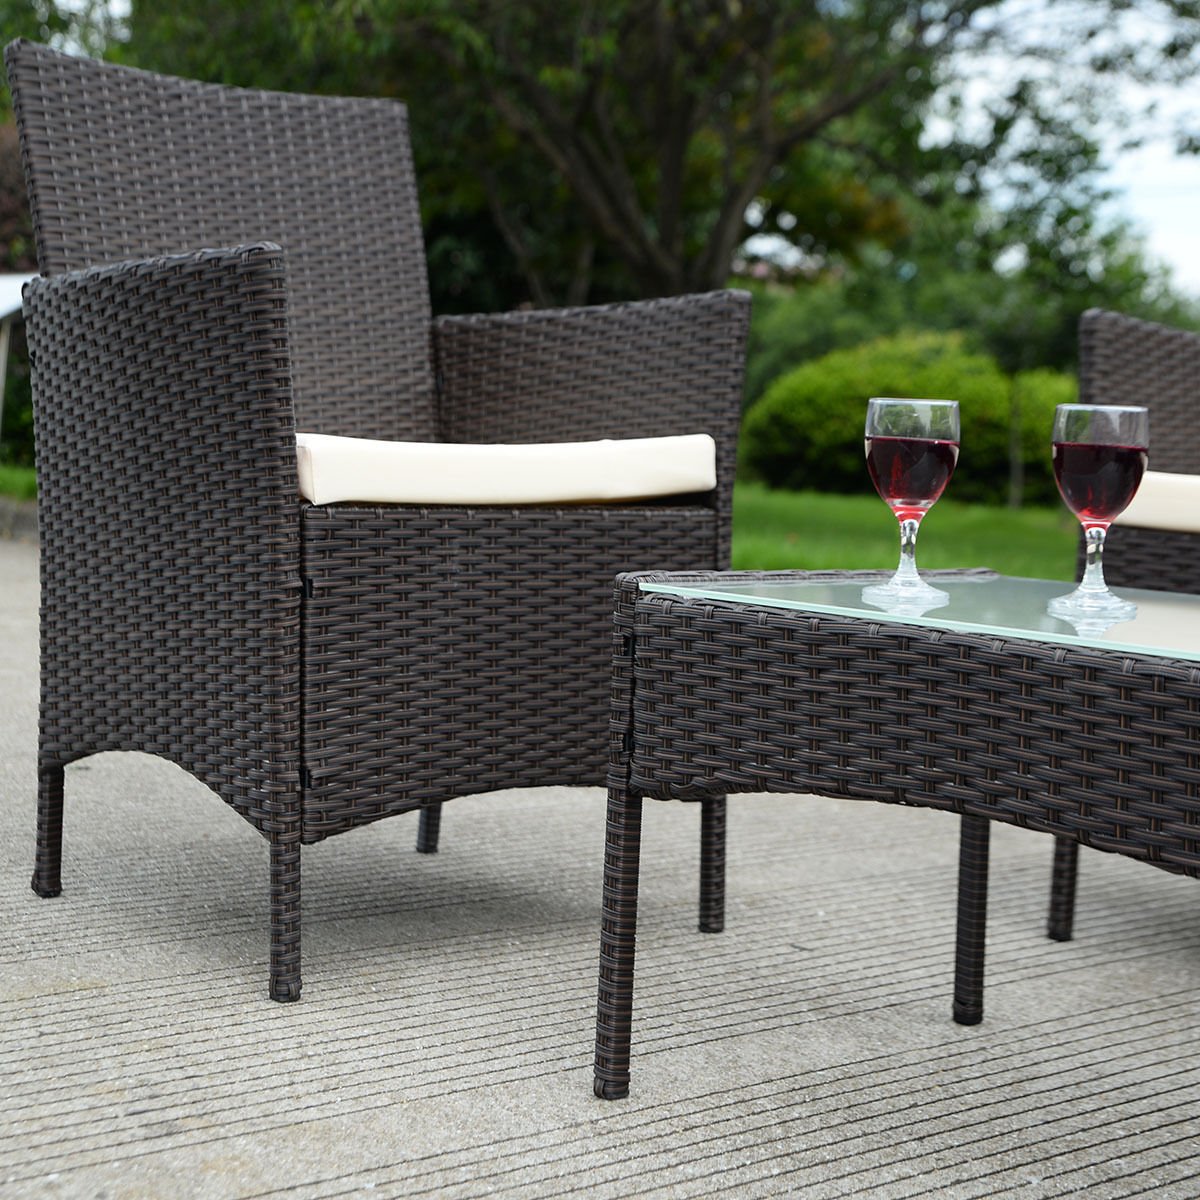 Costway 4 PC Patio Rattan Wicker Chair Sofa Table Set Outdoor